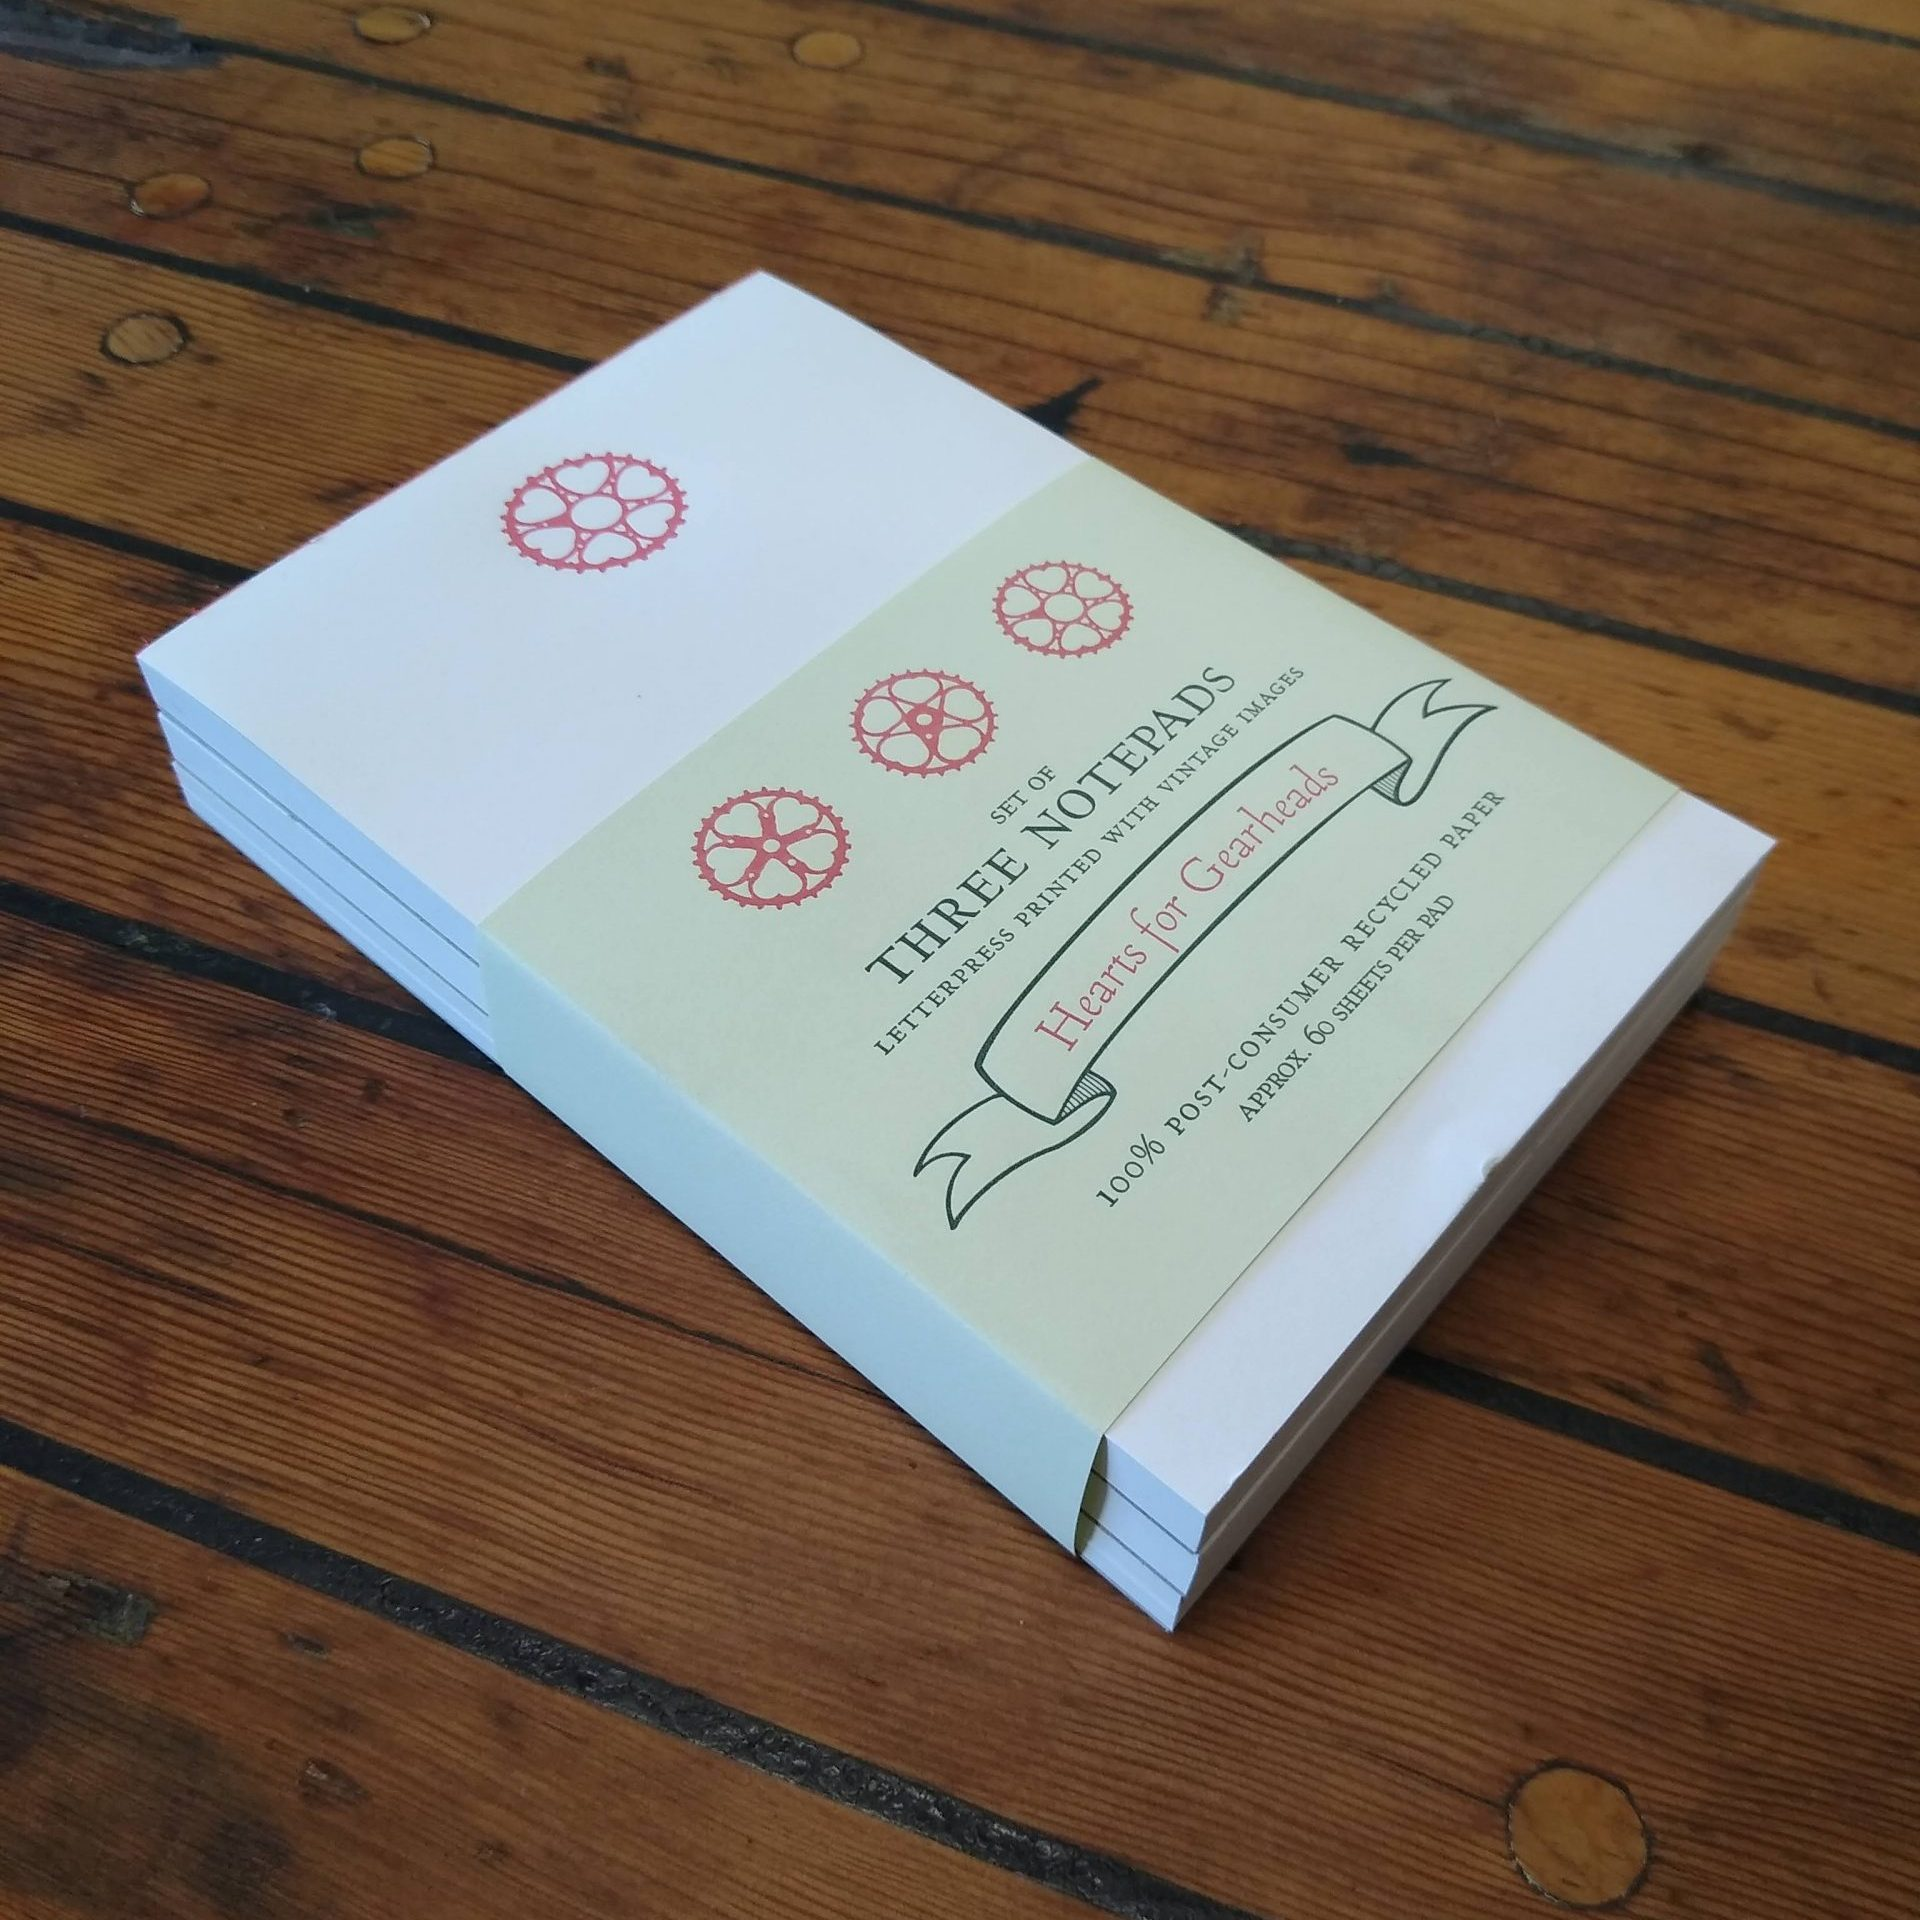 Letterpress printed notepad set with bicycle gear rings featuring sweet hearts